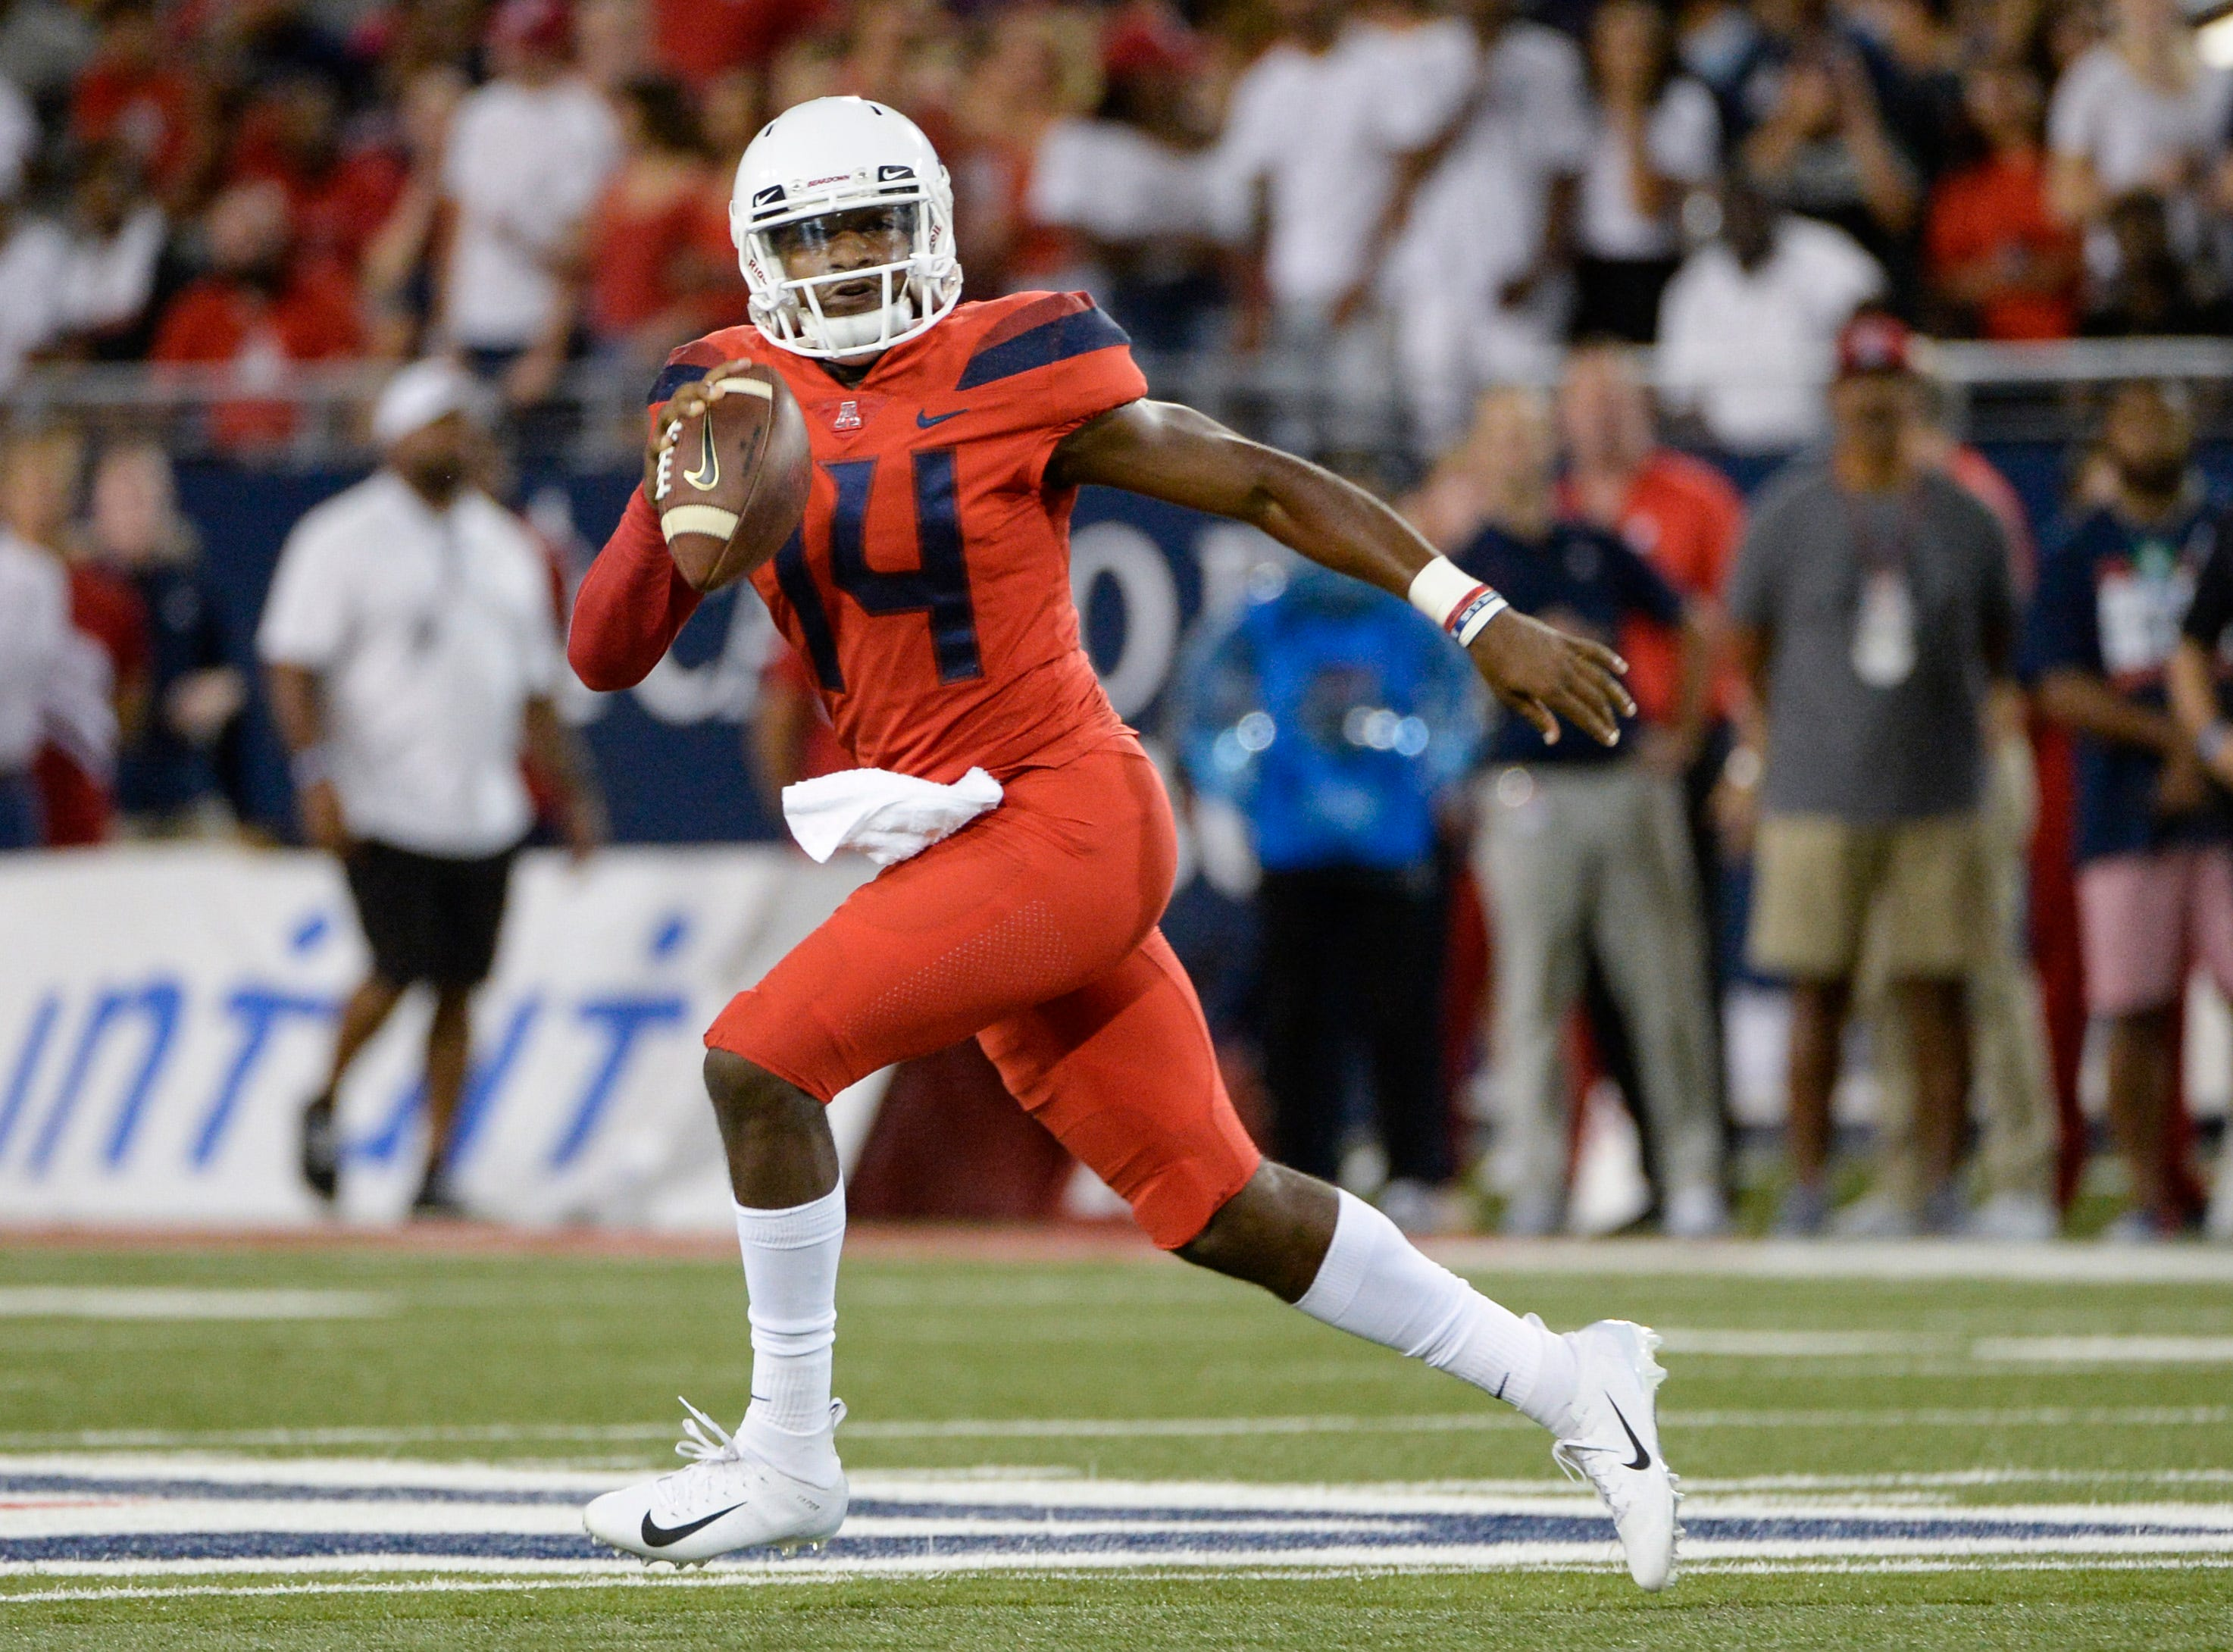 Sep 1, 2018; Tucson, AZ, USA; Arizona Wildcats quarterback Khalil Tate (14) runs the ball against the Brigham Young Cougars during the first quarter at Arizona Stadium.